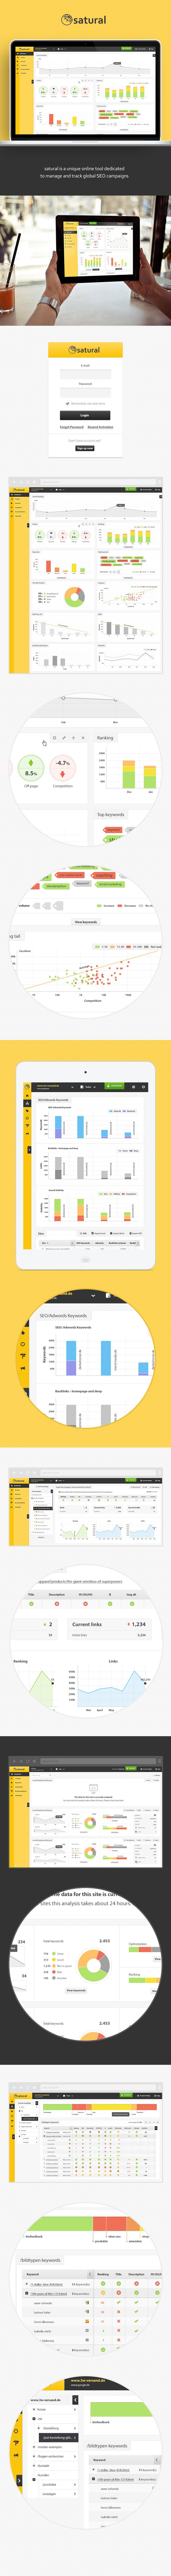 dashboard tablet / responsive